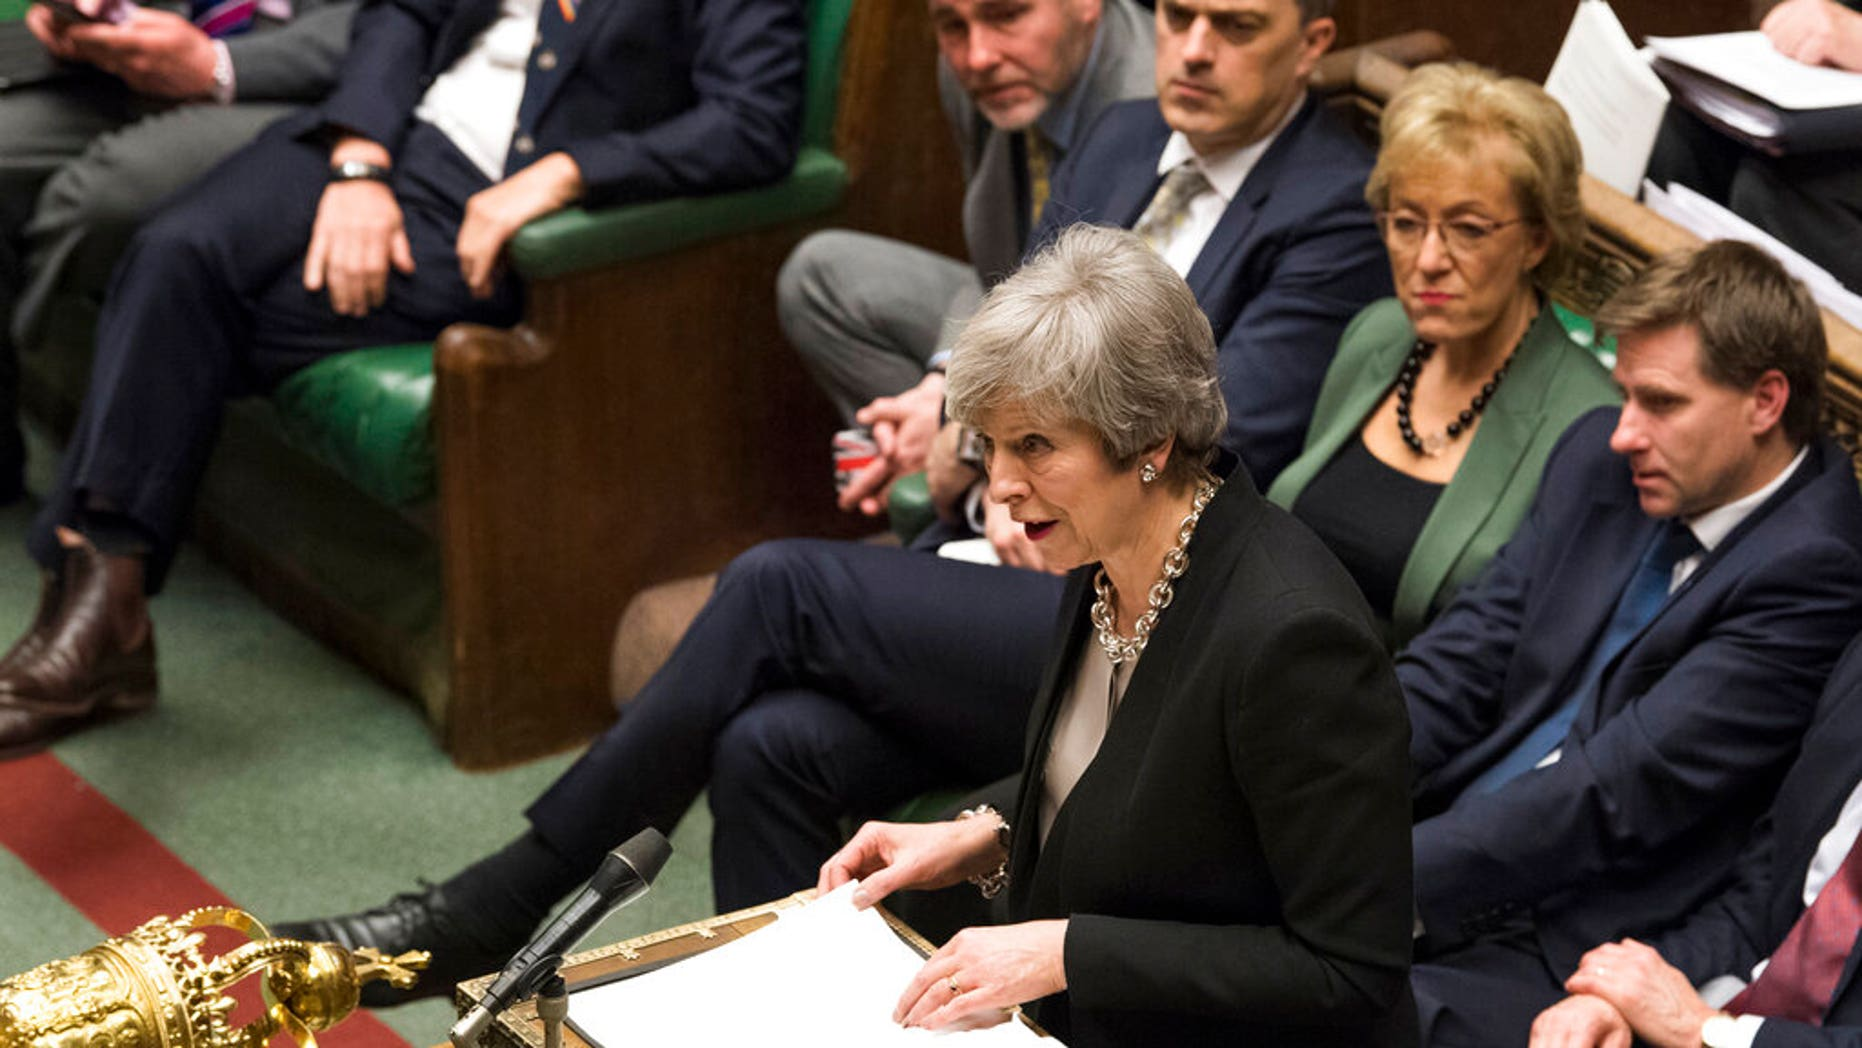 Britain's Prime Minister Theresa May reacts as she addresses the H  ouse of Commons Parliament during the debate on Britain's Brexit European Union Withdrawal Act, in London, Tuesday Jan. 29, 2019.(Jessica Taylor/UK Parliament via AP)